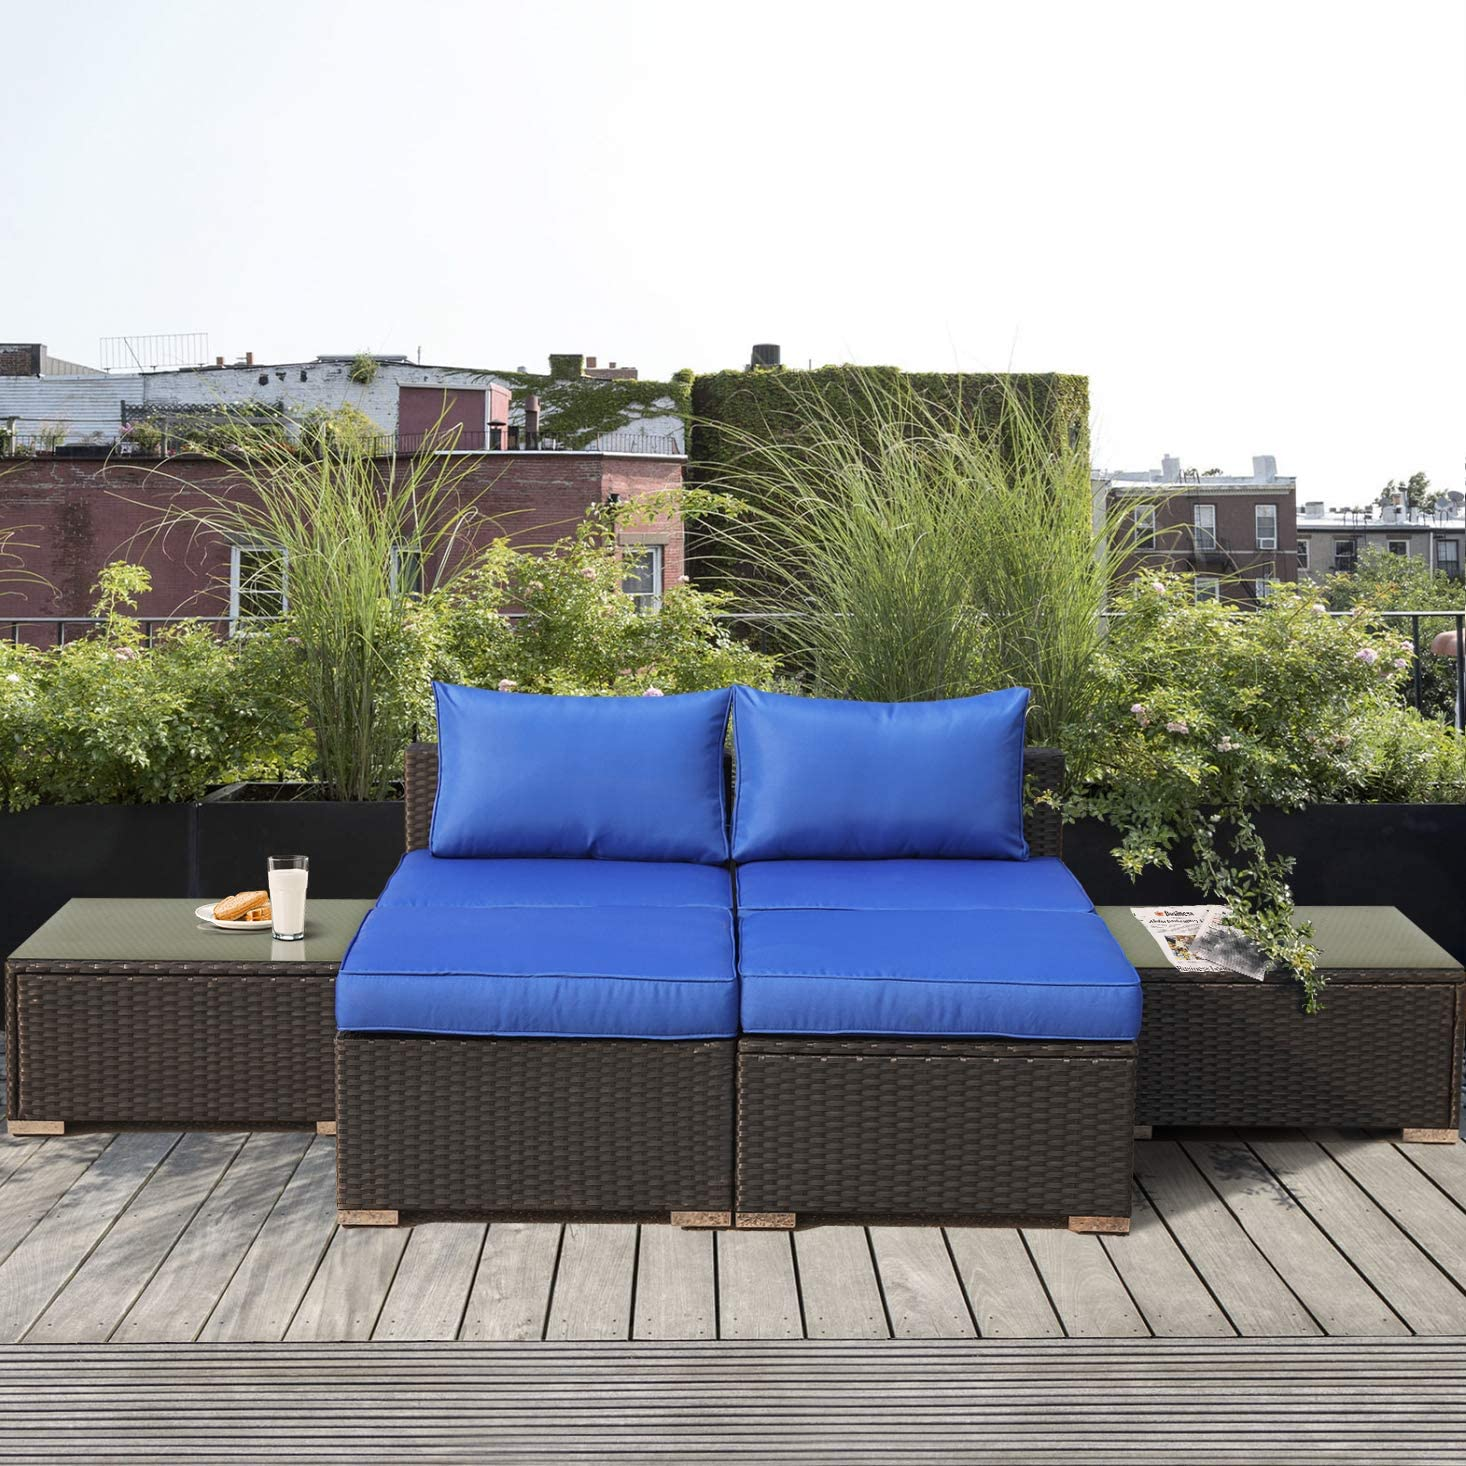 Patio Furniture Garden Rattan Sofa 6-Pieces Outdoor Sectional Couch Wicker-Easy Assembled Black Rattan Royal Blue Cushion